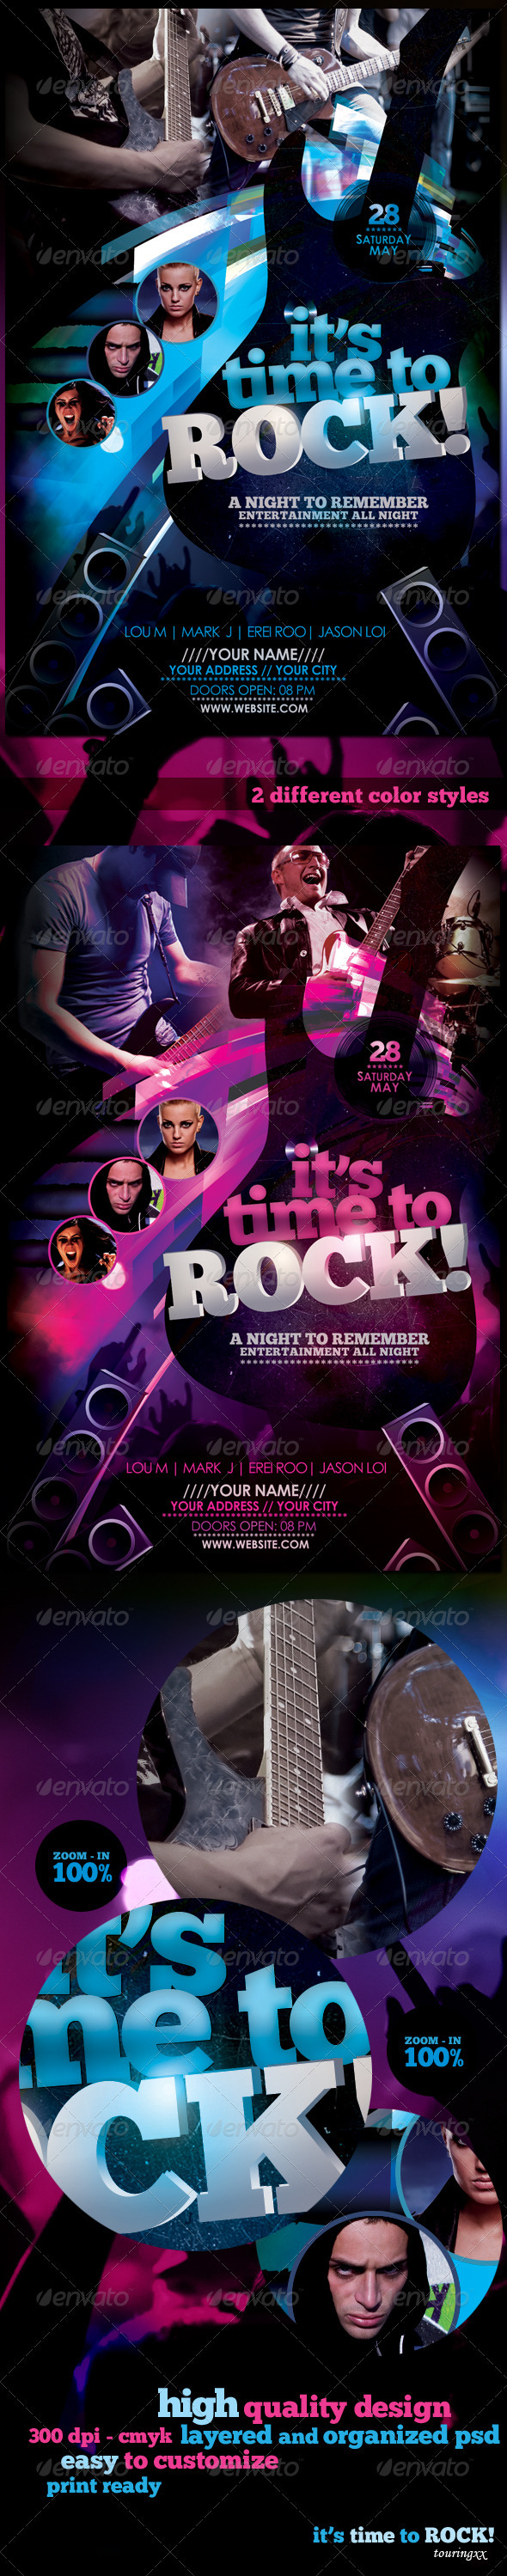 It's Time To Rock! Flyer Template - Clubs & Parties Events